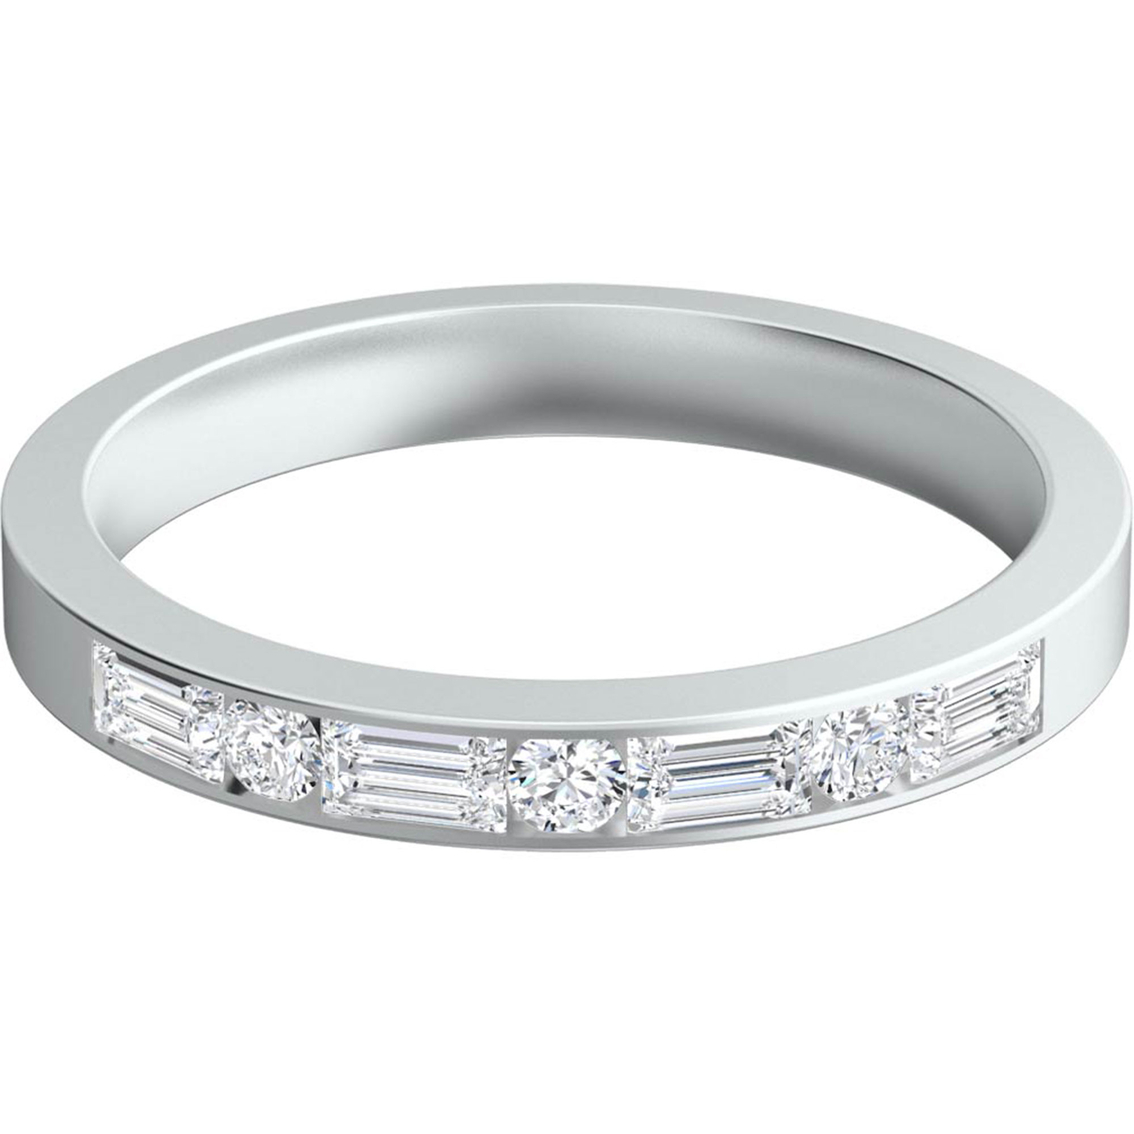 Sasha Primak Platinum 12 Ctw Baguette And Round Diamond. Platinum Diamond Band. Curb Link Bracelet. 3 Carat Diamond. Diamond Ring With Diamonds All Around The Band. Gift Box Watches. Buy Crystal Beads. Wide Engagement Rings. Chocolate Diamond Bands